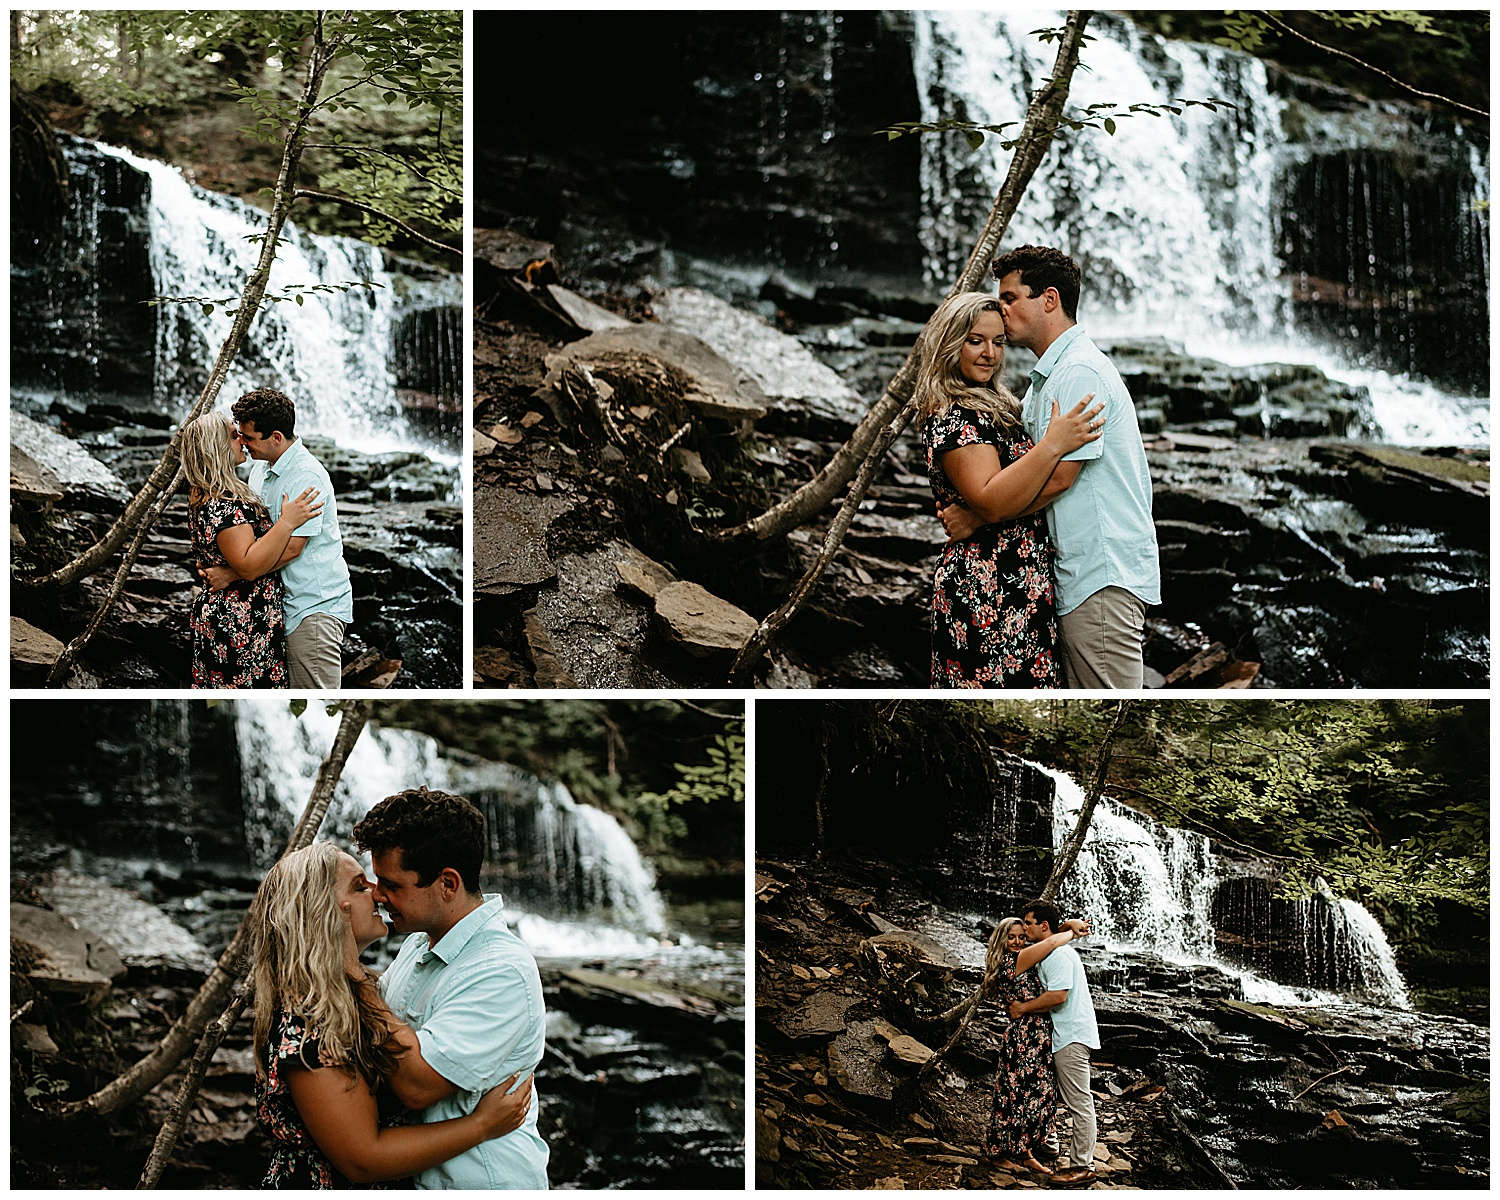 NEPA-Bloomsburg-Lehigh-Valley-Wedding-Photographer-Engagement-session-at-Ricketts-Glen-State-Park_0011.jpg